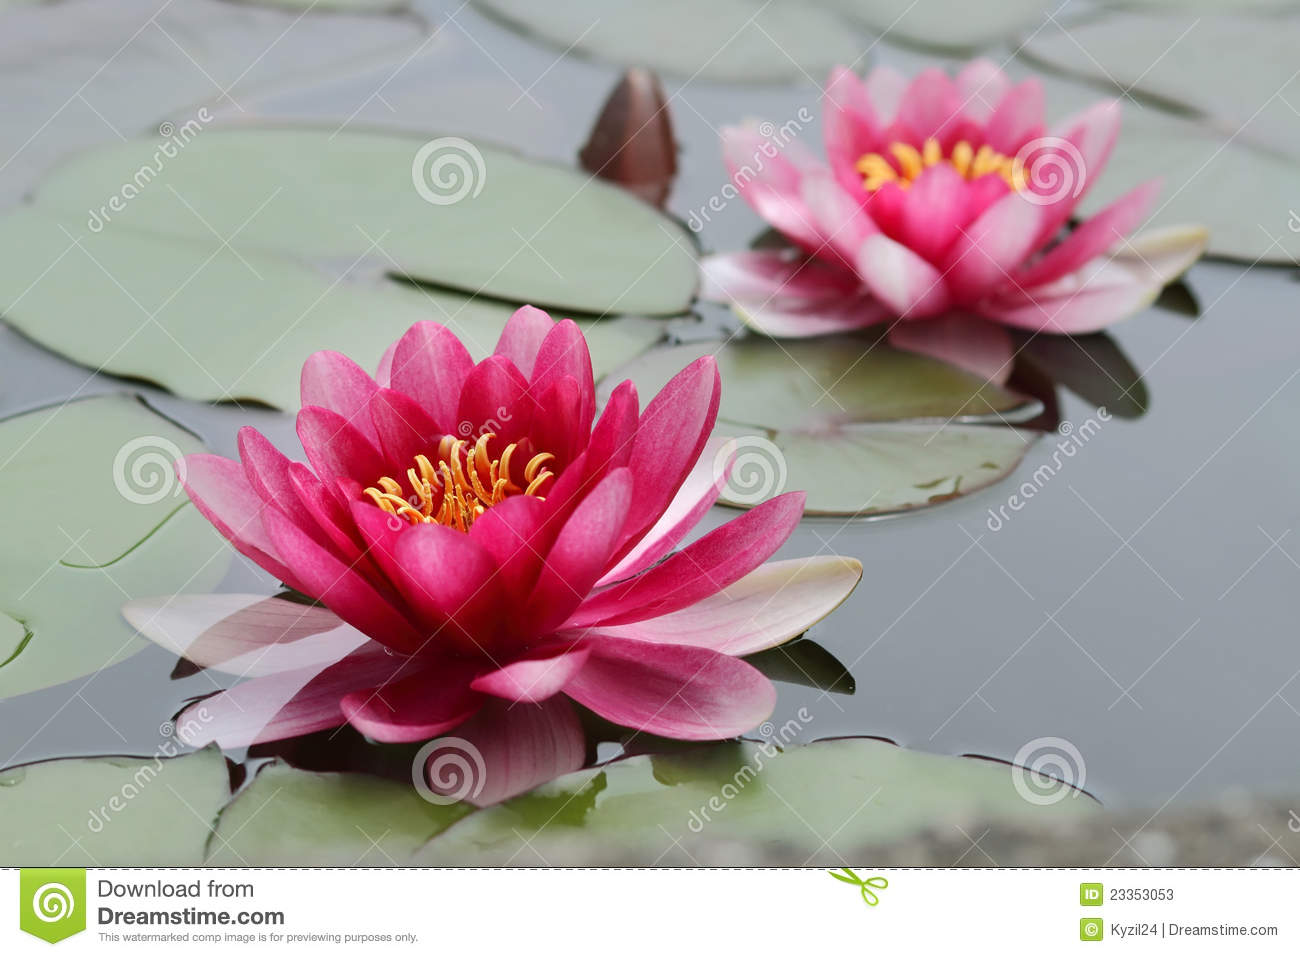 lotus flowers stock photo  image, Beautiful flower